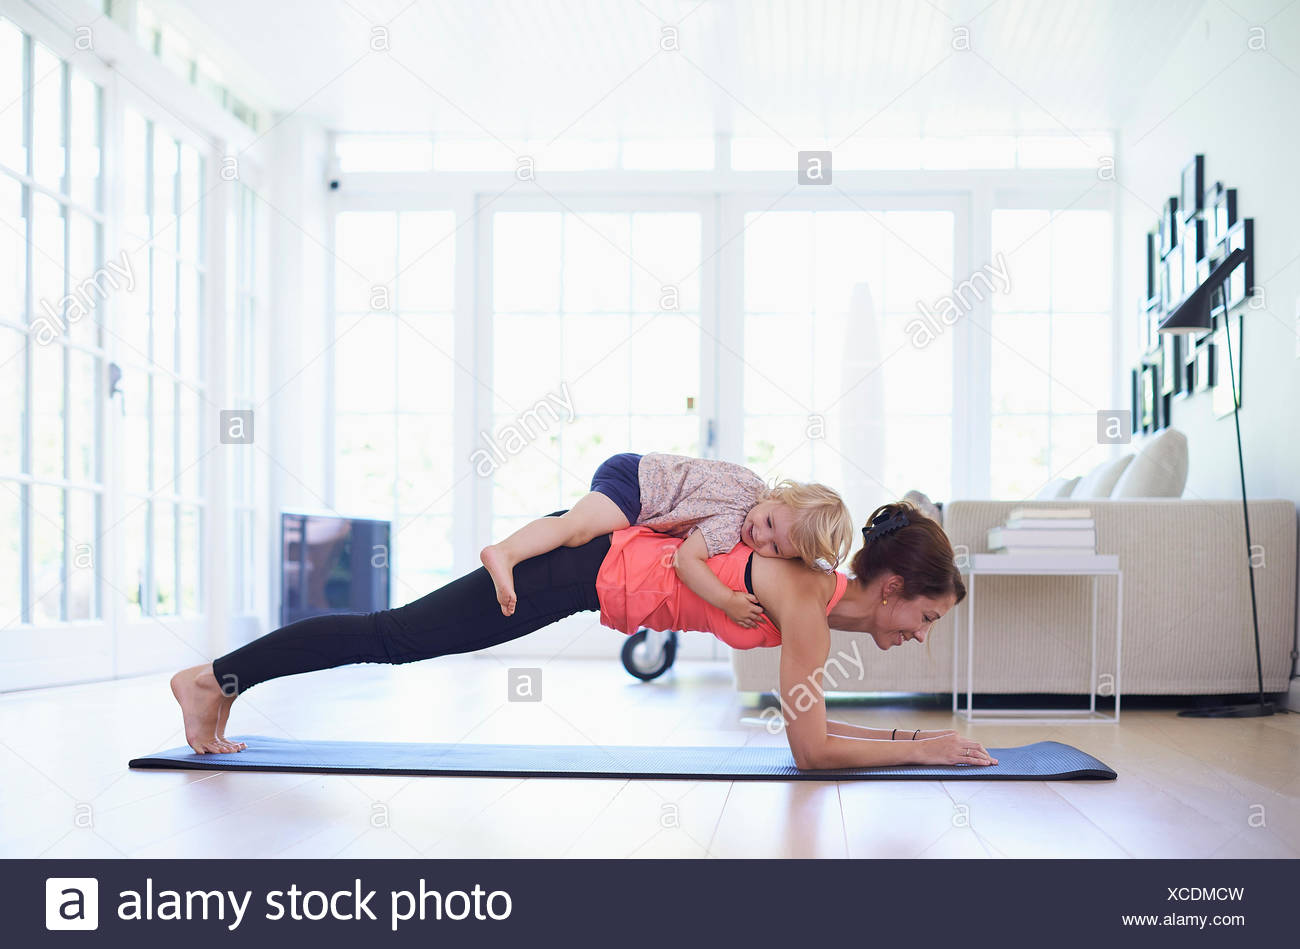 Mid adult mother pratiquant le yoga avec bébé fille sur elle Photo Stock